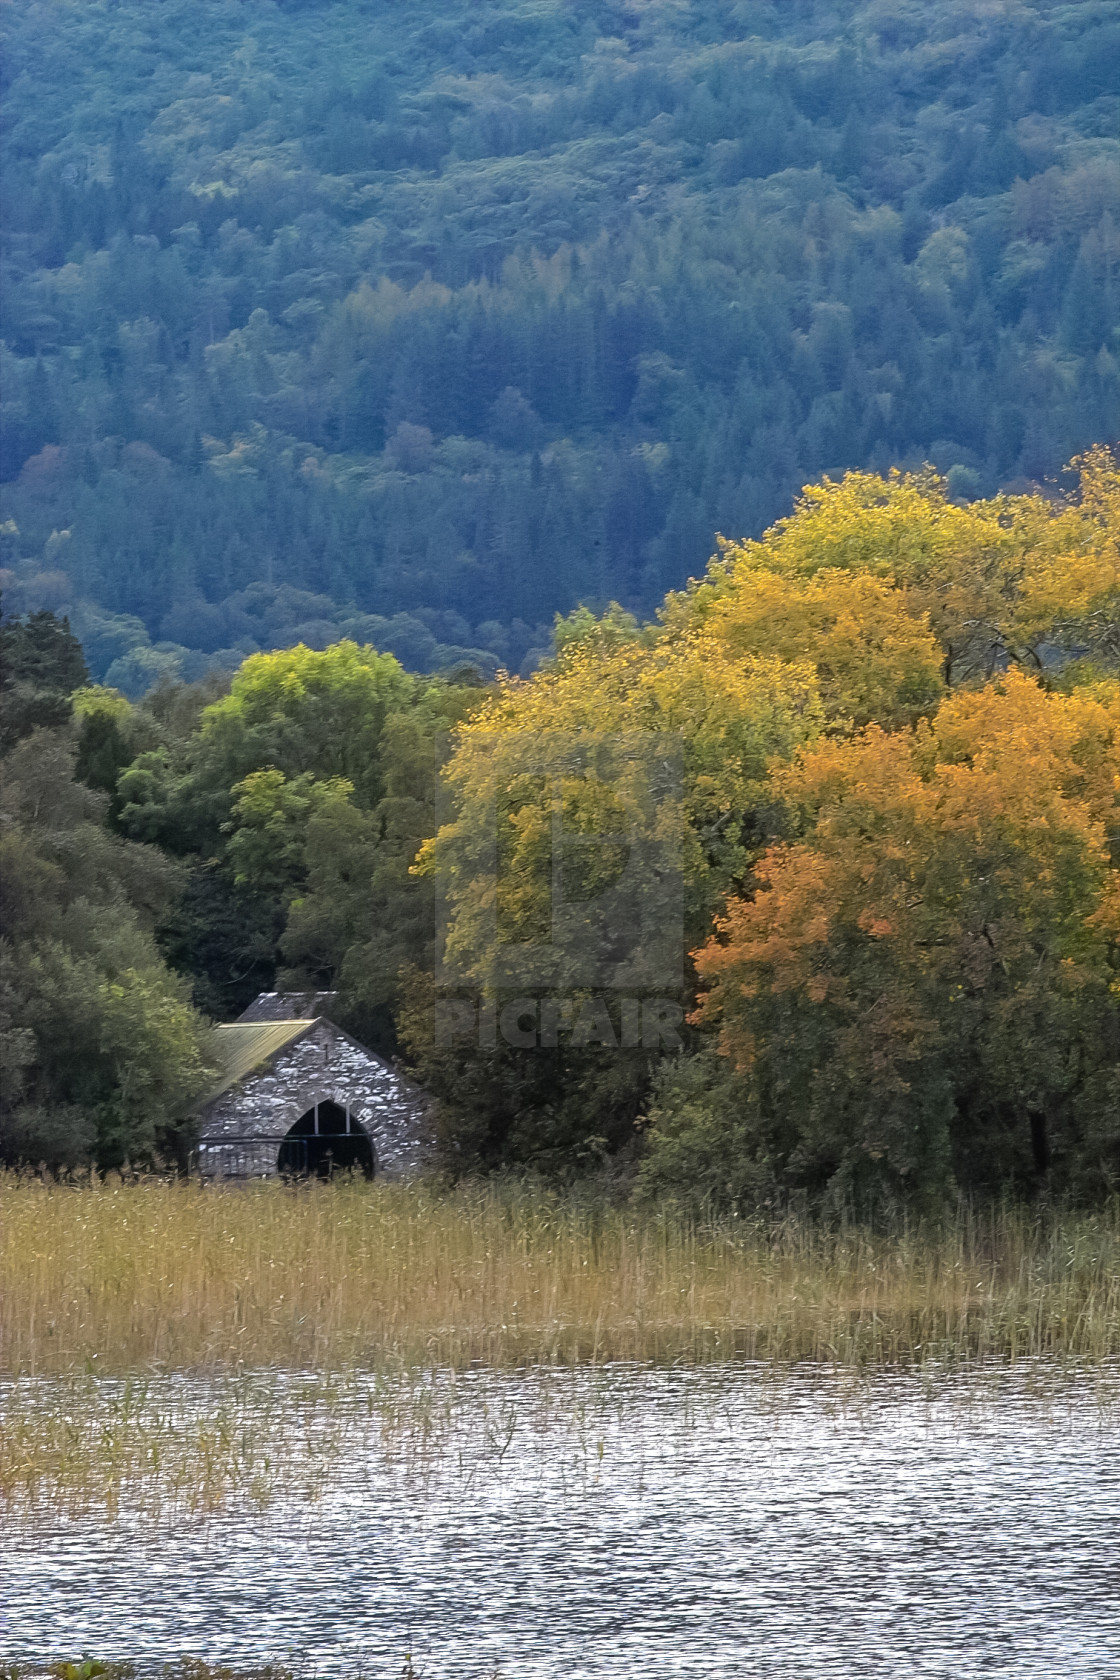 Old Boathouse Killarney Ireland - License, download or print